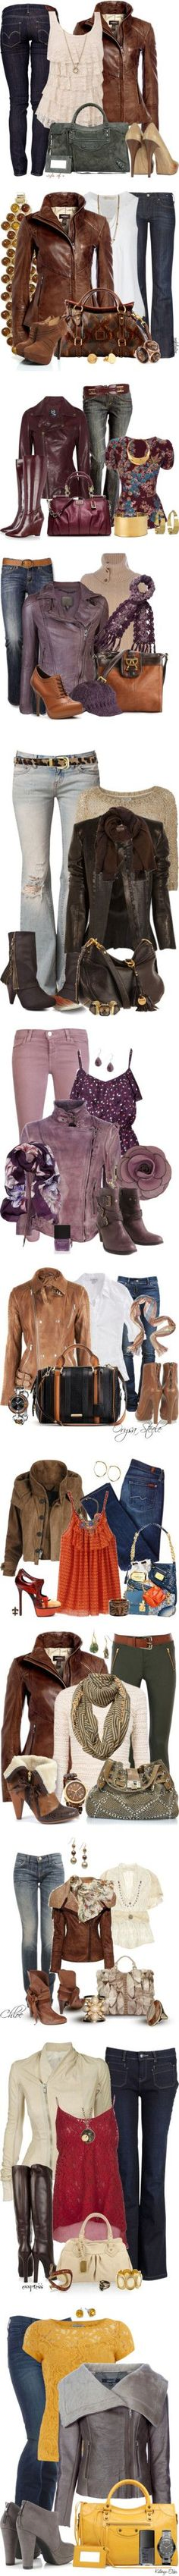 Leather Jacket and Jeans by jackie22 on Polyvore featuring Danier, Levi's, Forever 21, Balenciaga, Michael Kors, Levi's Made & Crafted, Fat Face, Fantasy Jewelry Box, Banana Republic and Dooney & Bourke